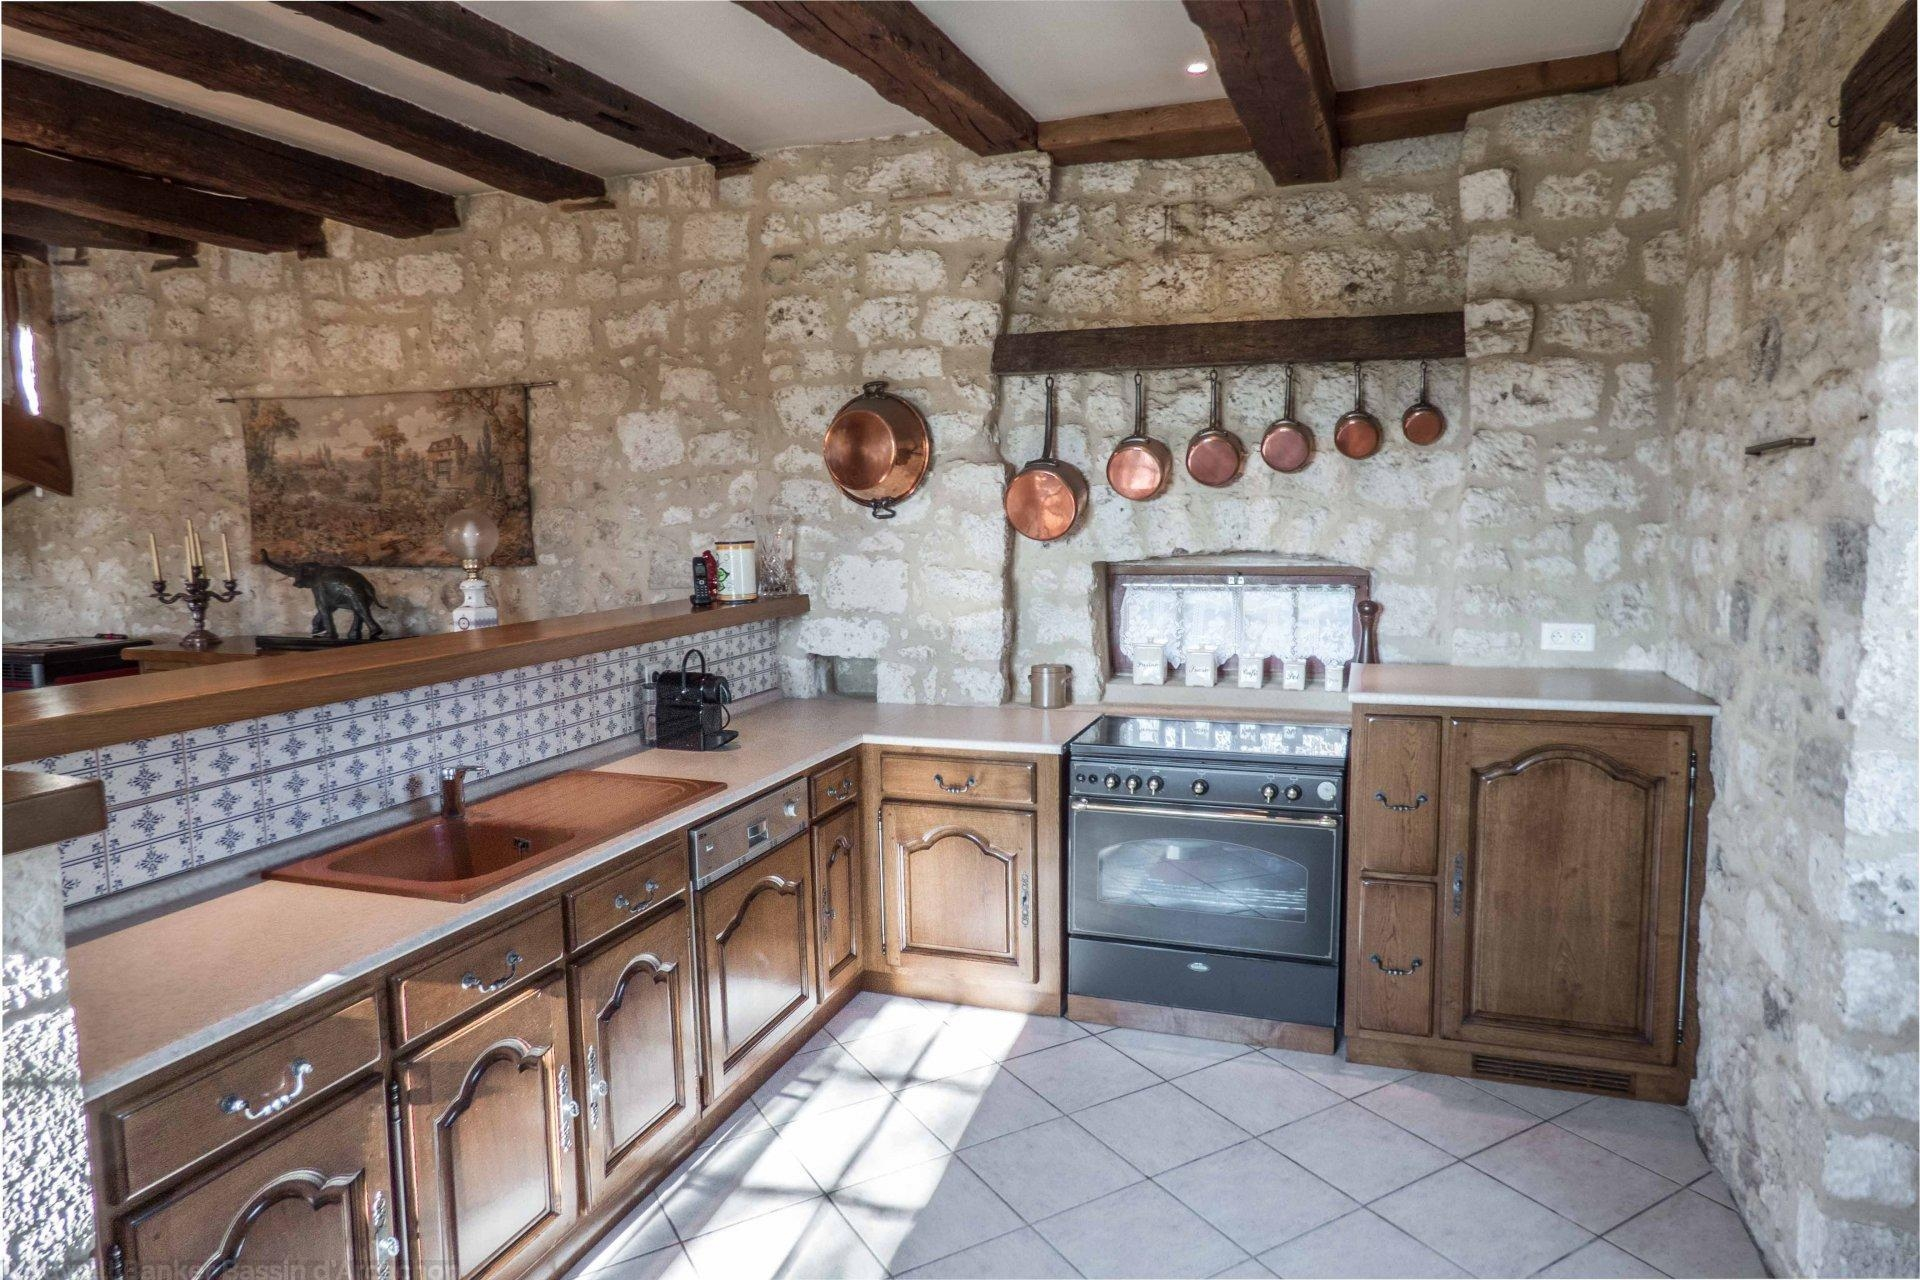 Achat maison 2 chambres possibilite 3 proche villereal beaumont du perigord issigeac